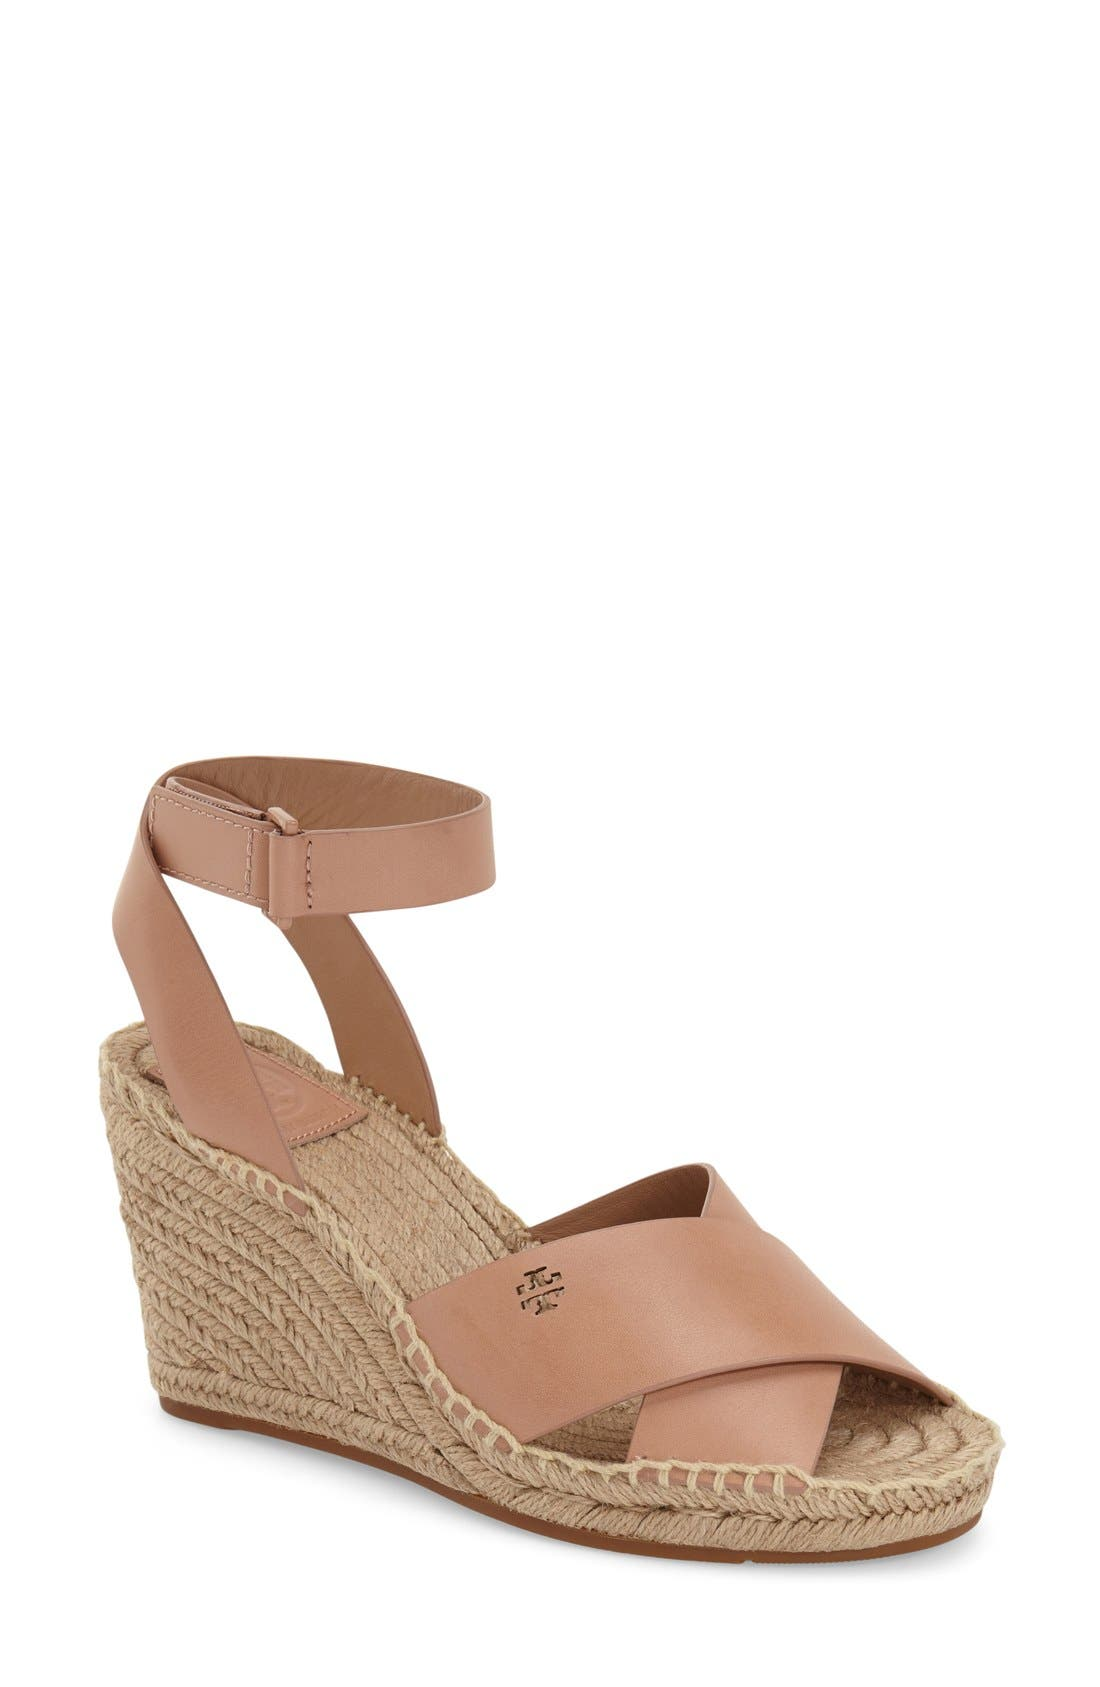 'Bima' Espadrille Wedge,                             Main thumbnail 1, color,                             256